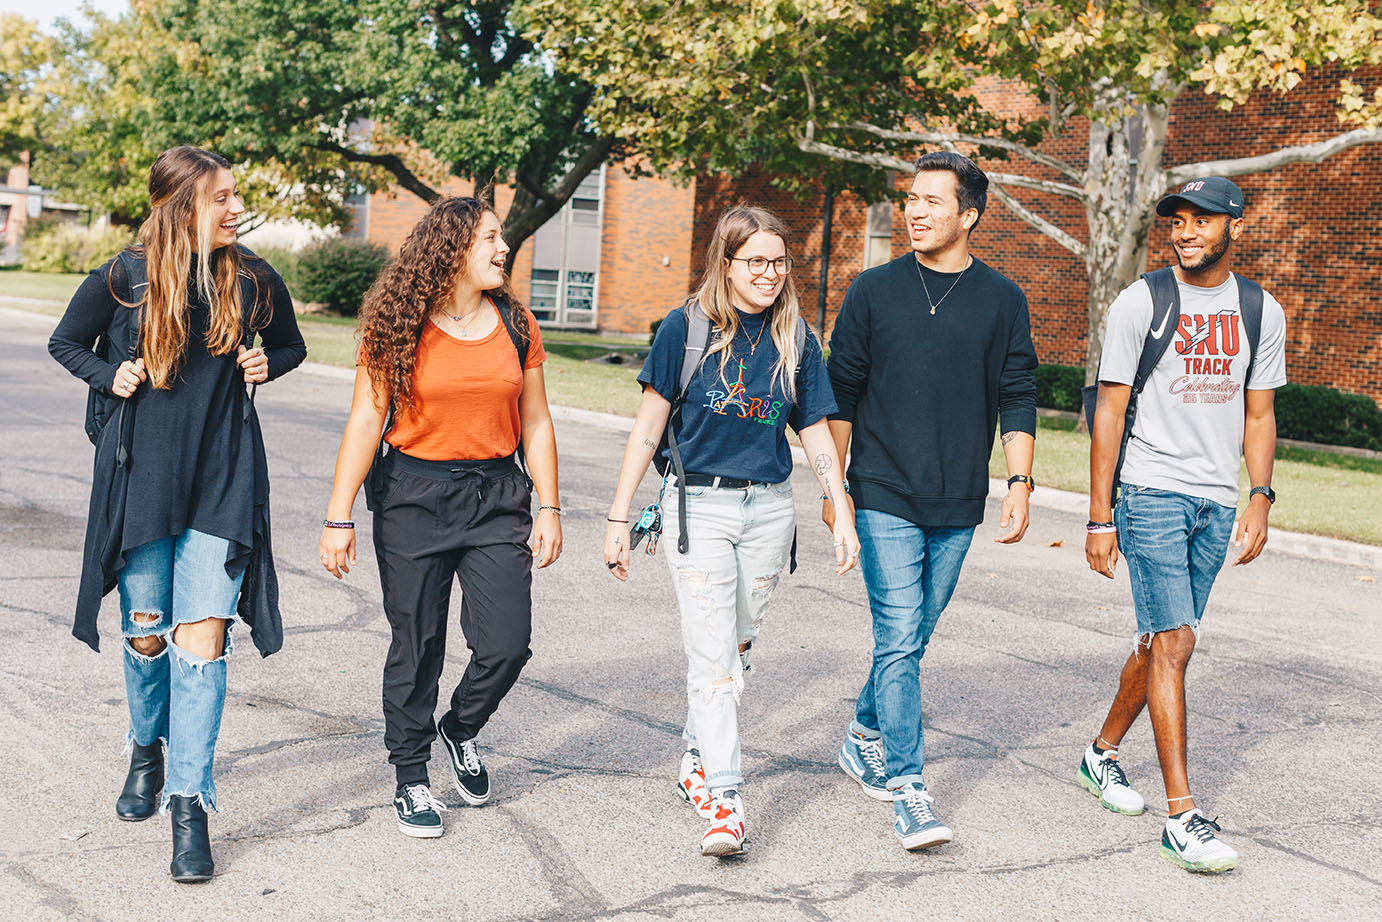 Group of students walking across campus in the fall